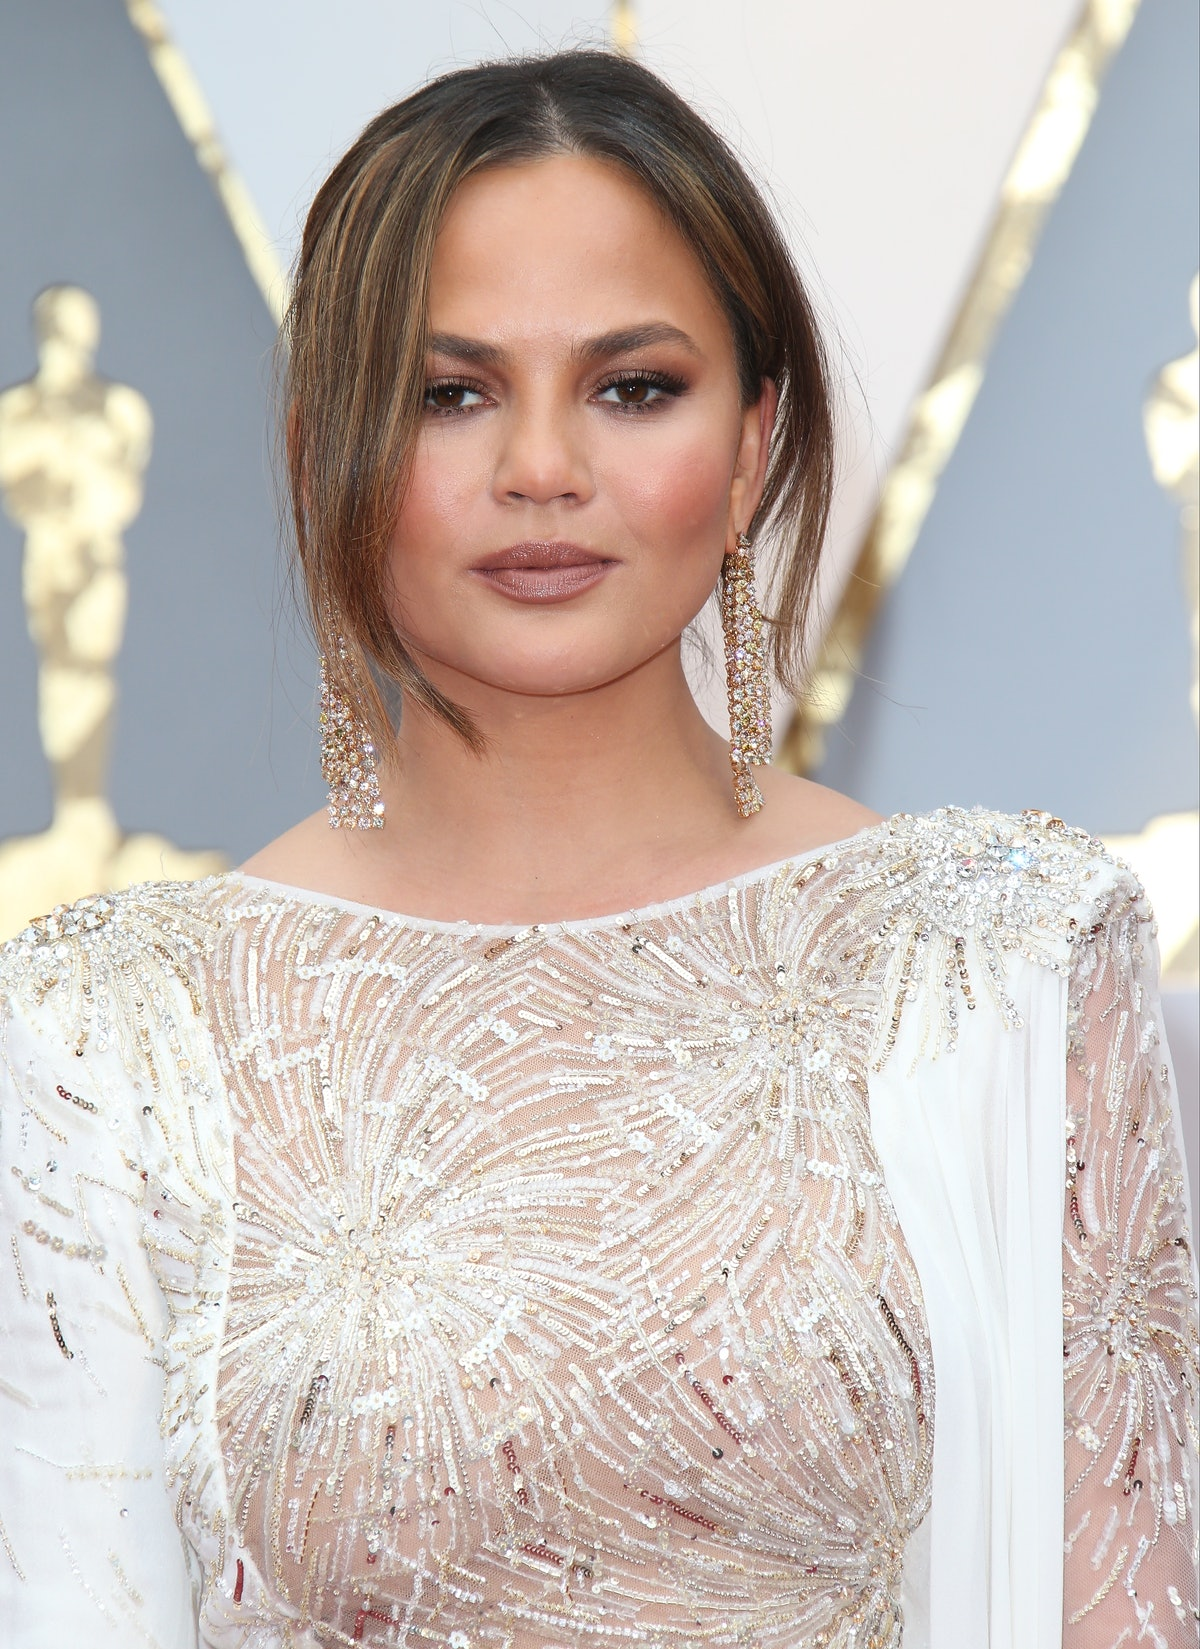 HOLLYWOOD, CA - FEBRUARY 26: Model Chrissy Teigen arrives at the 89th Annual Academy Awards at Holly...